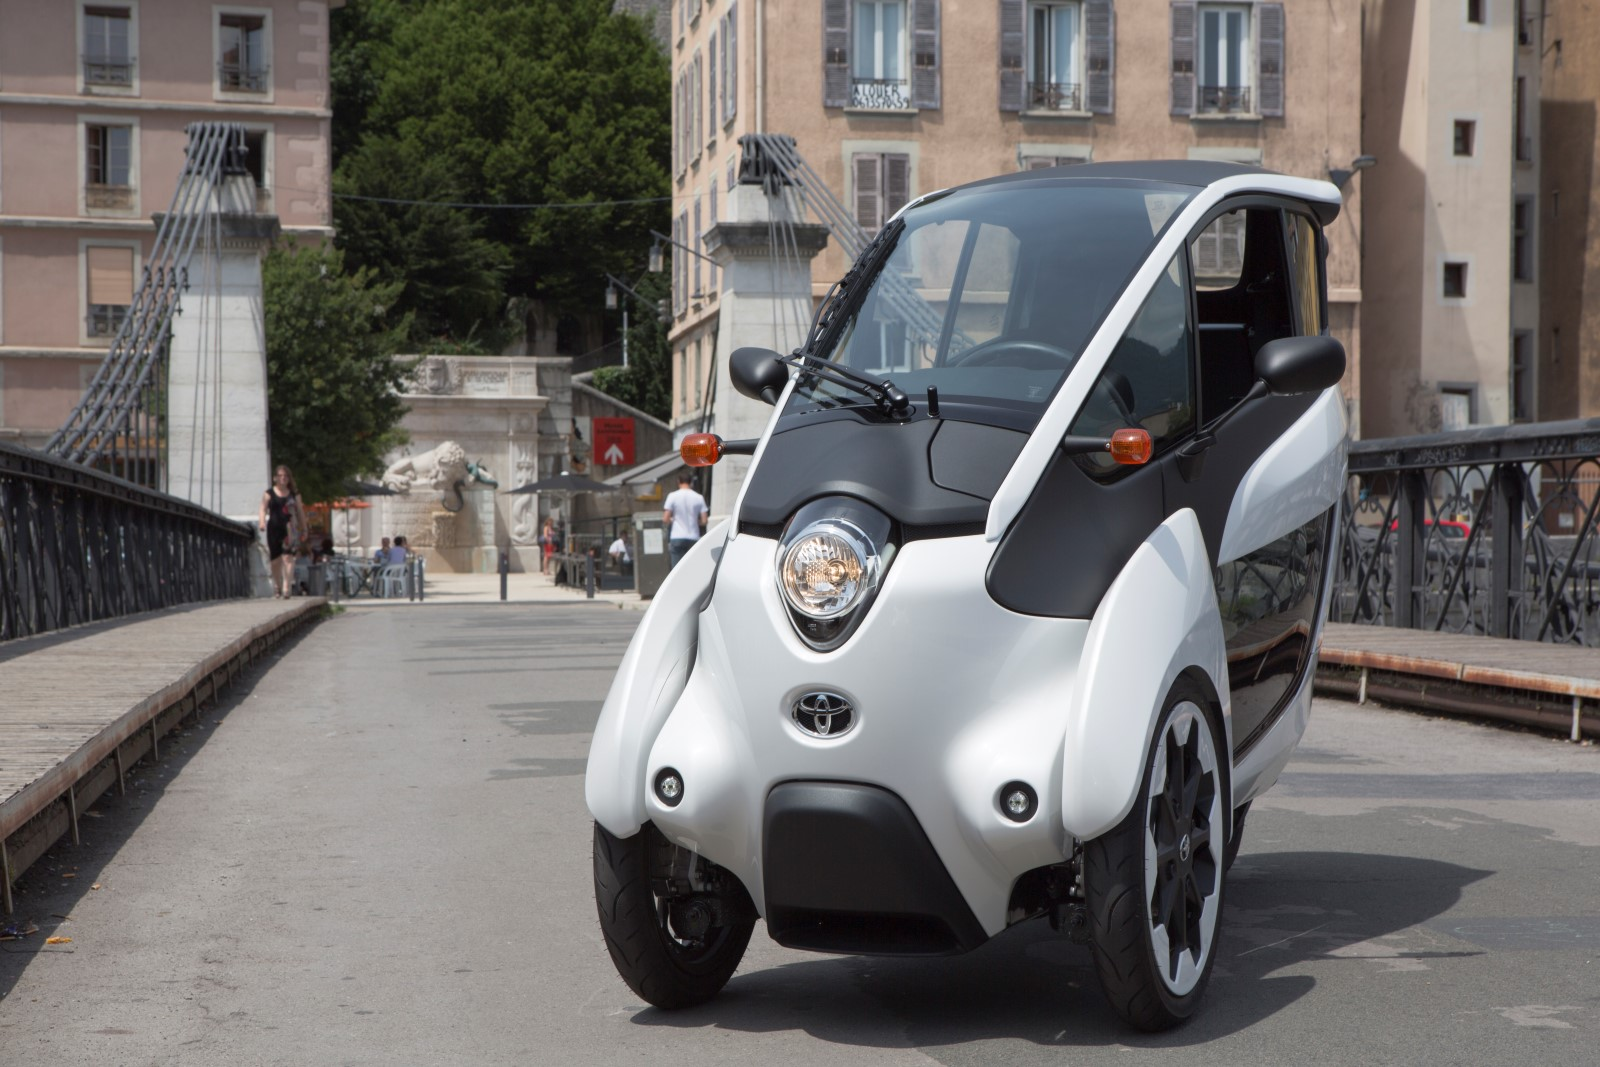 Nissan Leaf Lease >> Toyota i-Road Electric City Car Undergoes French Car-Share Trials